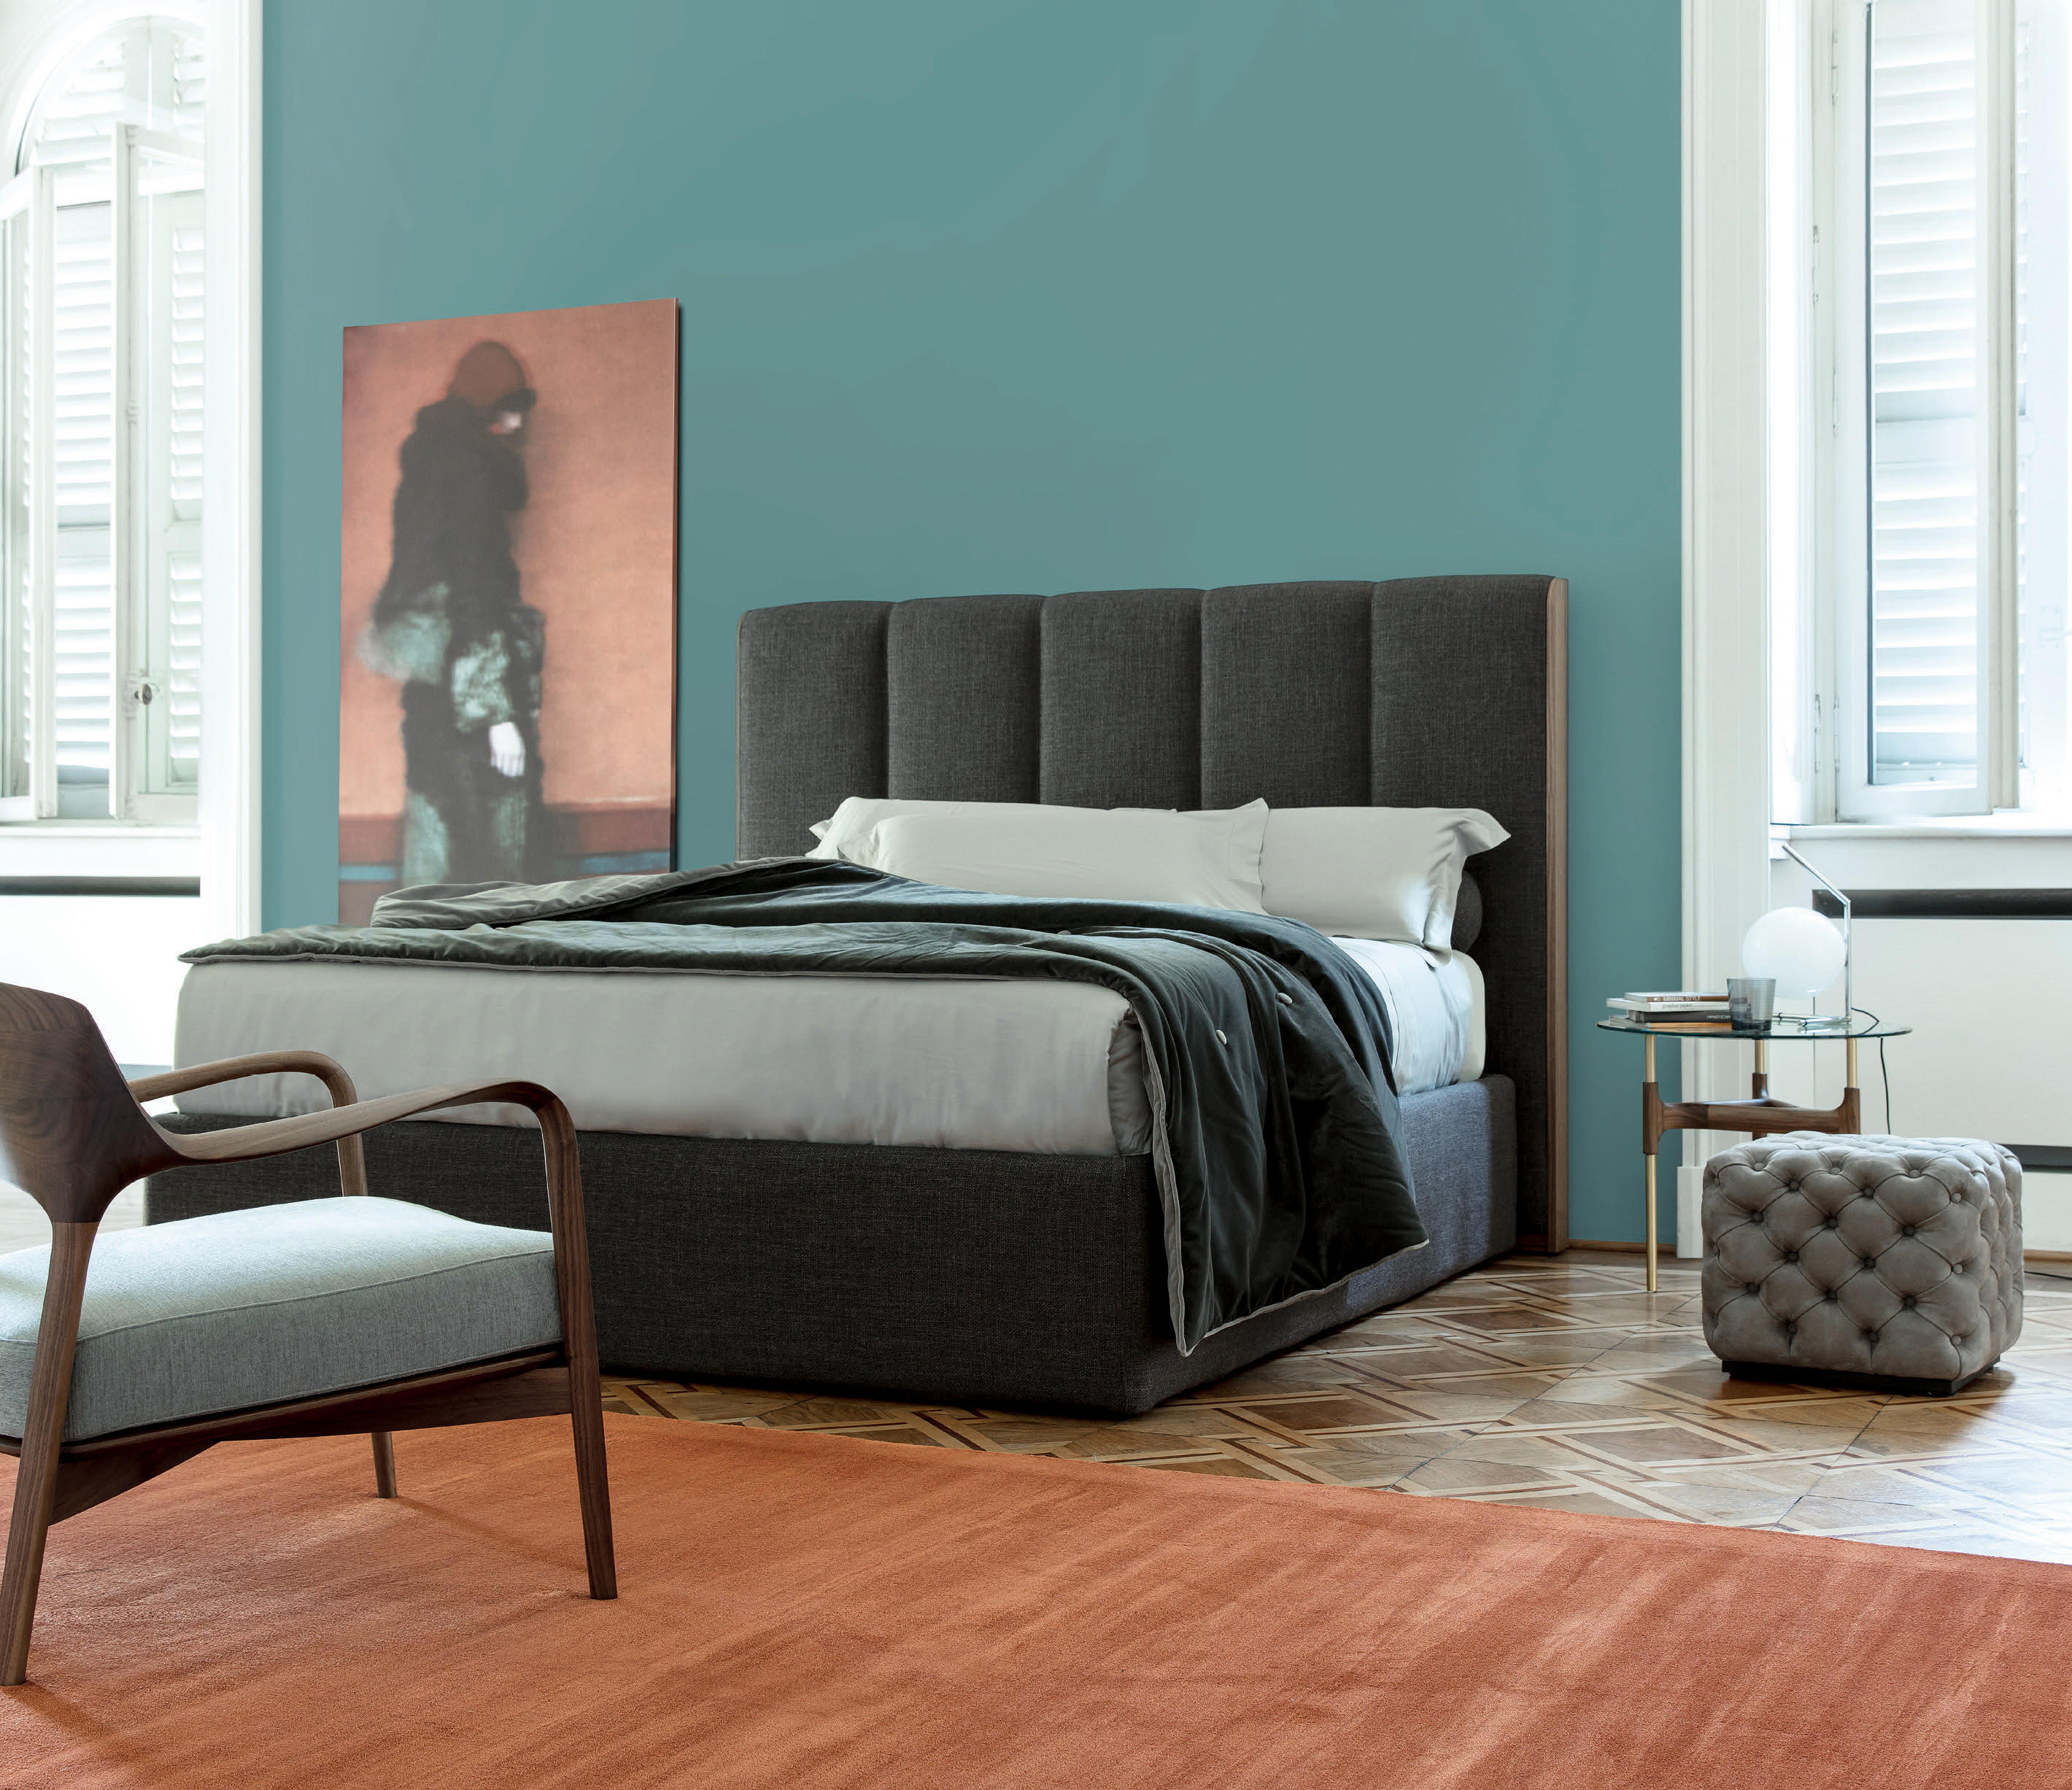 Apollo By Porada Beds